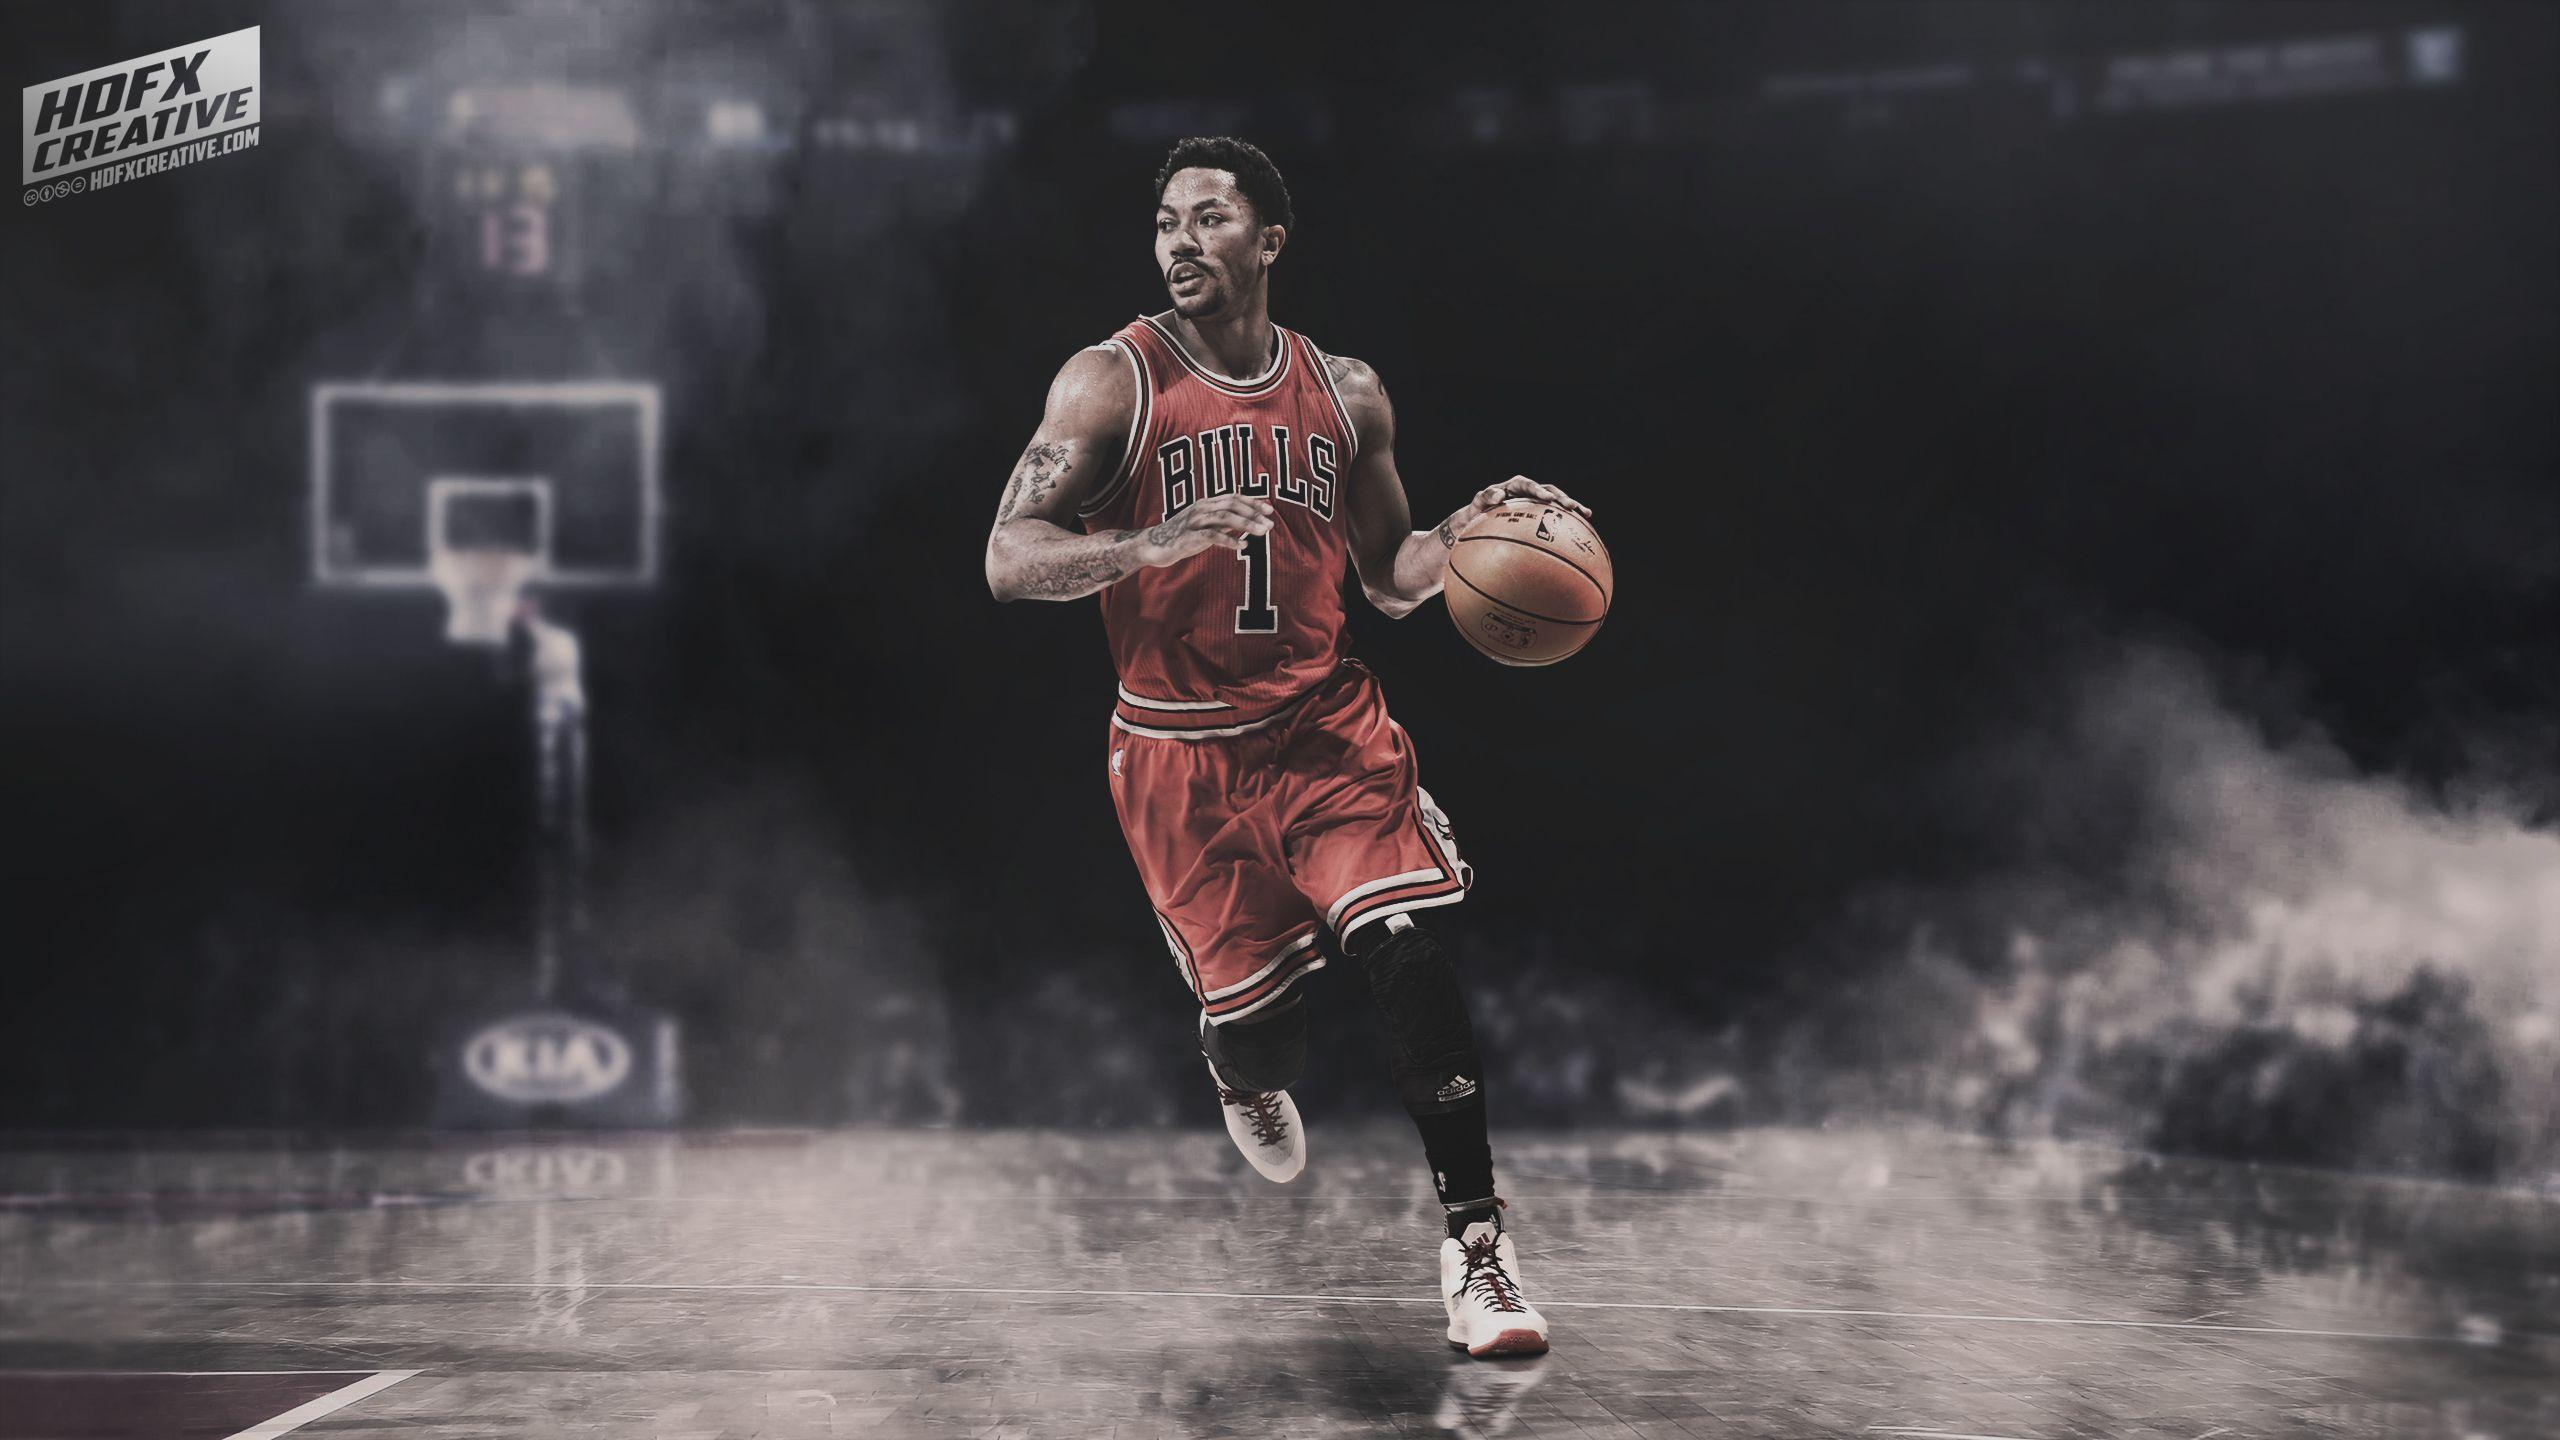 derrick rose wallpaper iphone - photo #17